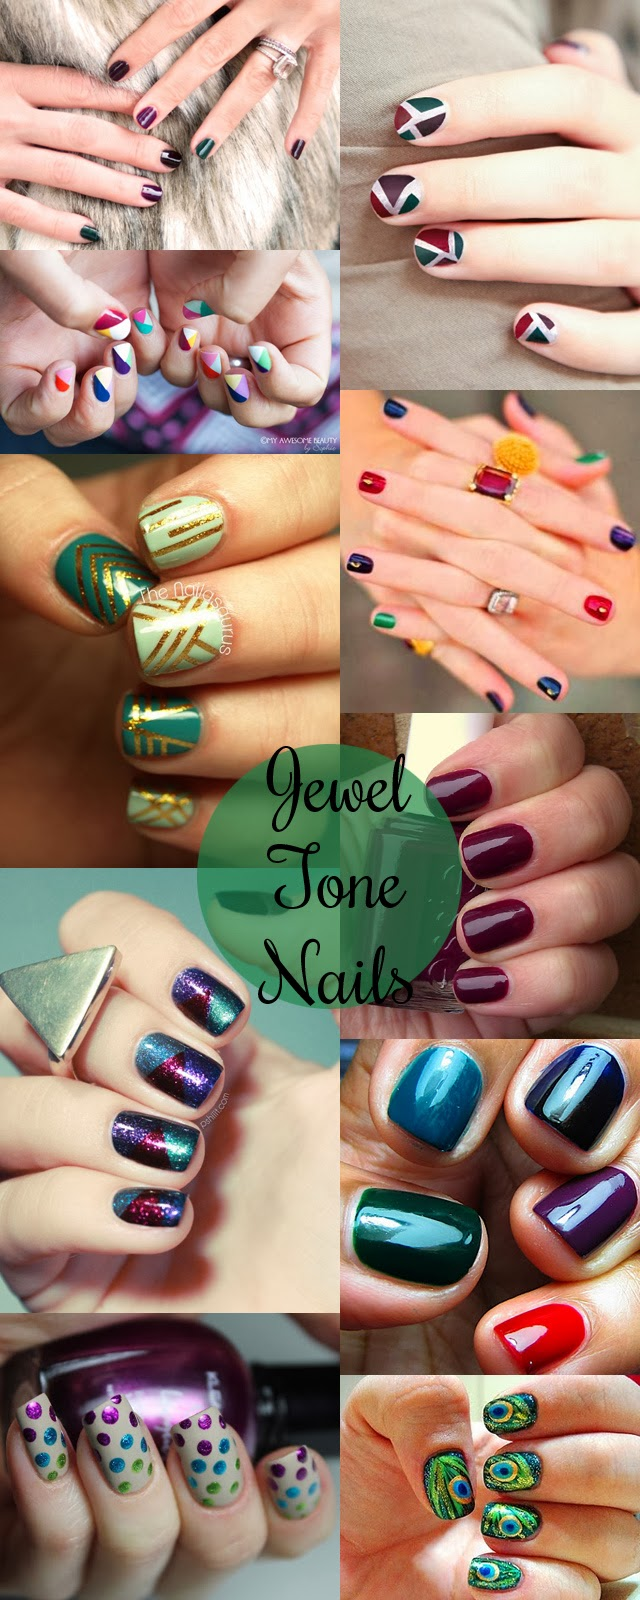 Sincerely, Sara | Style & Books: Inspiration: Jewel Tone Nails + ...